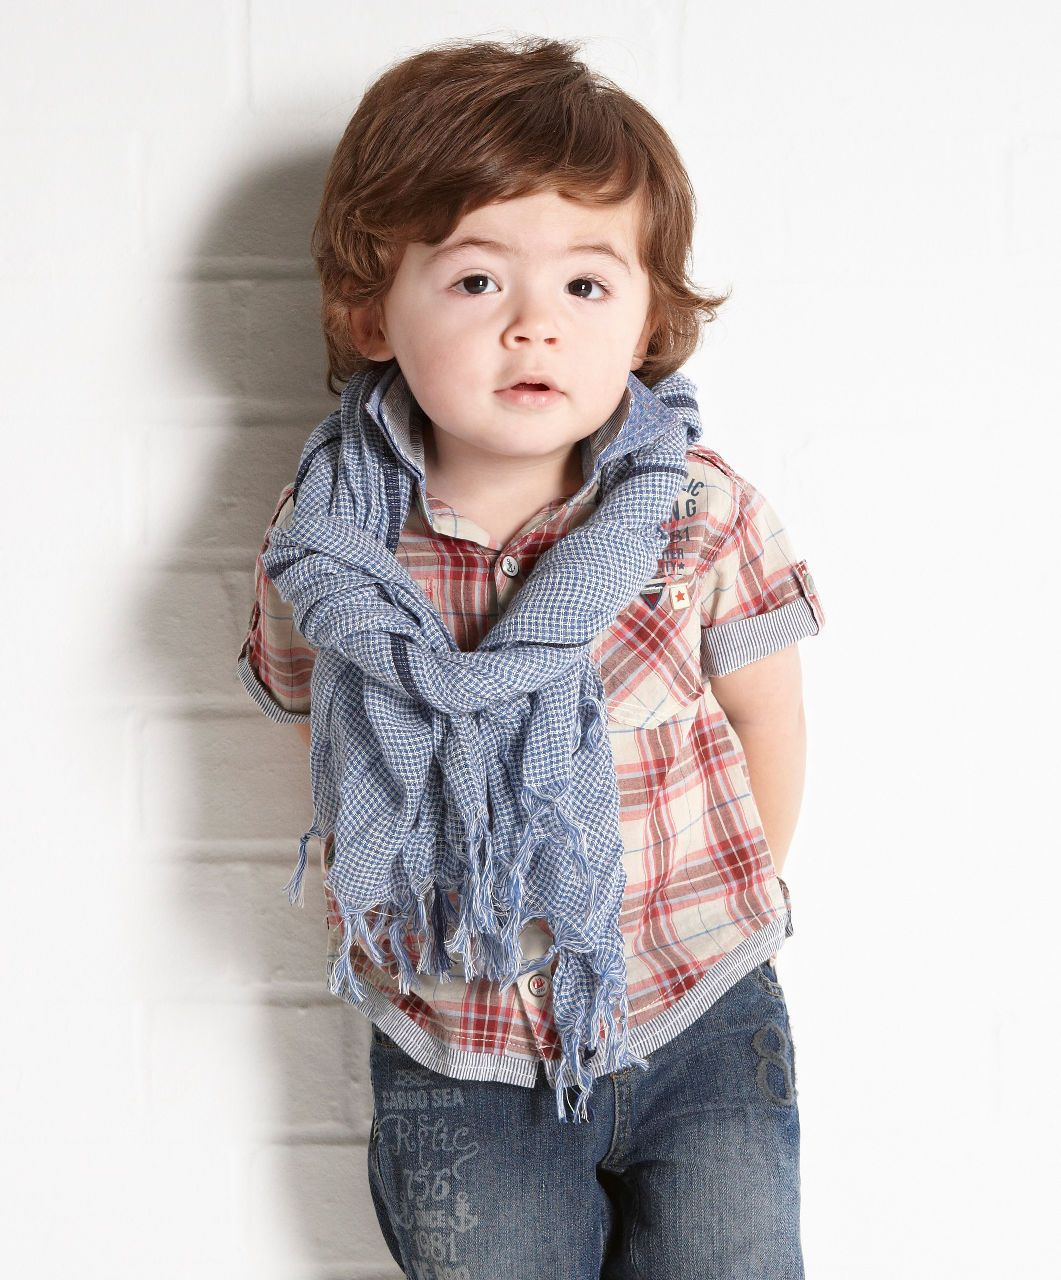 Shop for Designer Boys Clothes from 0 to 16 years old at Melijoe. Ralph Lauren, Paul Smith, Hugo Boss, Tommy Hilfigher, Galliano, Fendi, Roberto Cavalli and more «The one-stop destination for all things kids fashion.